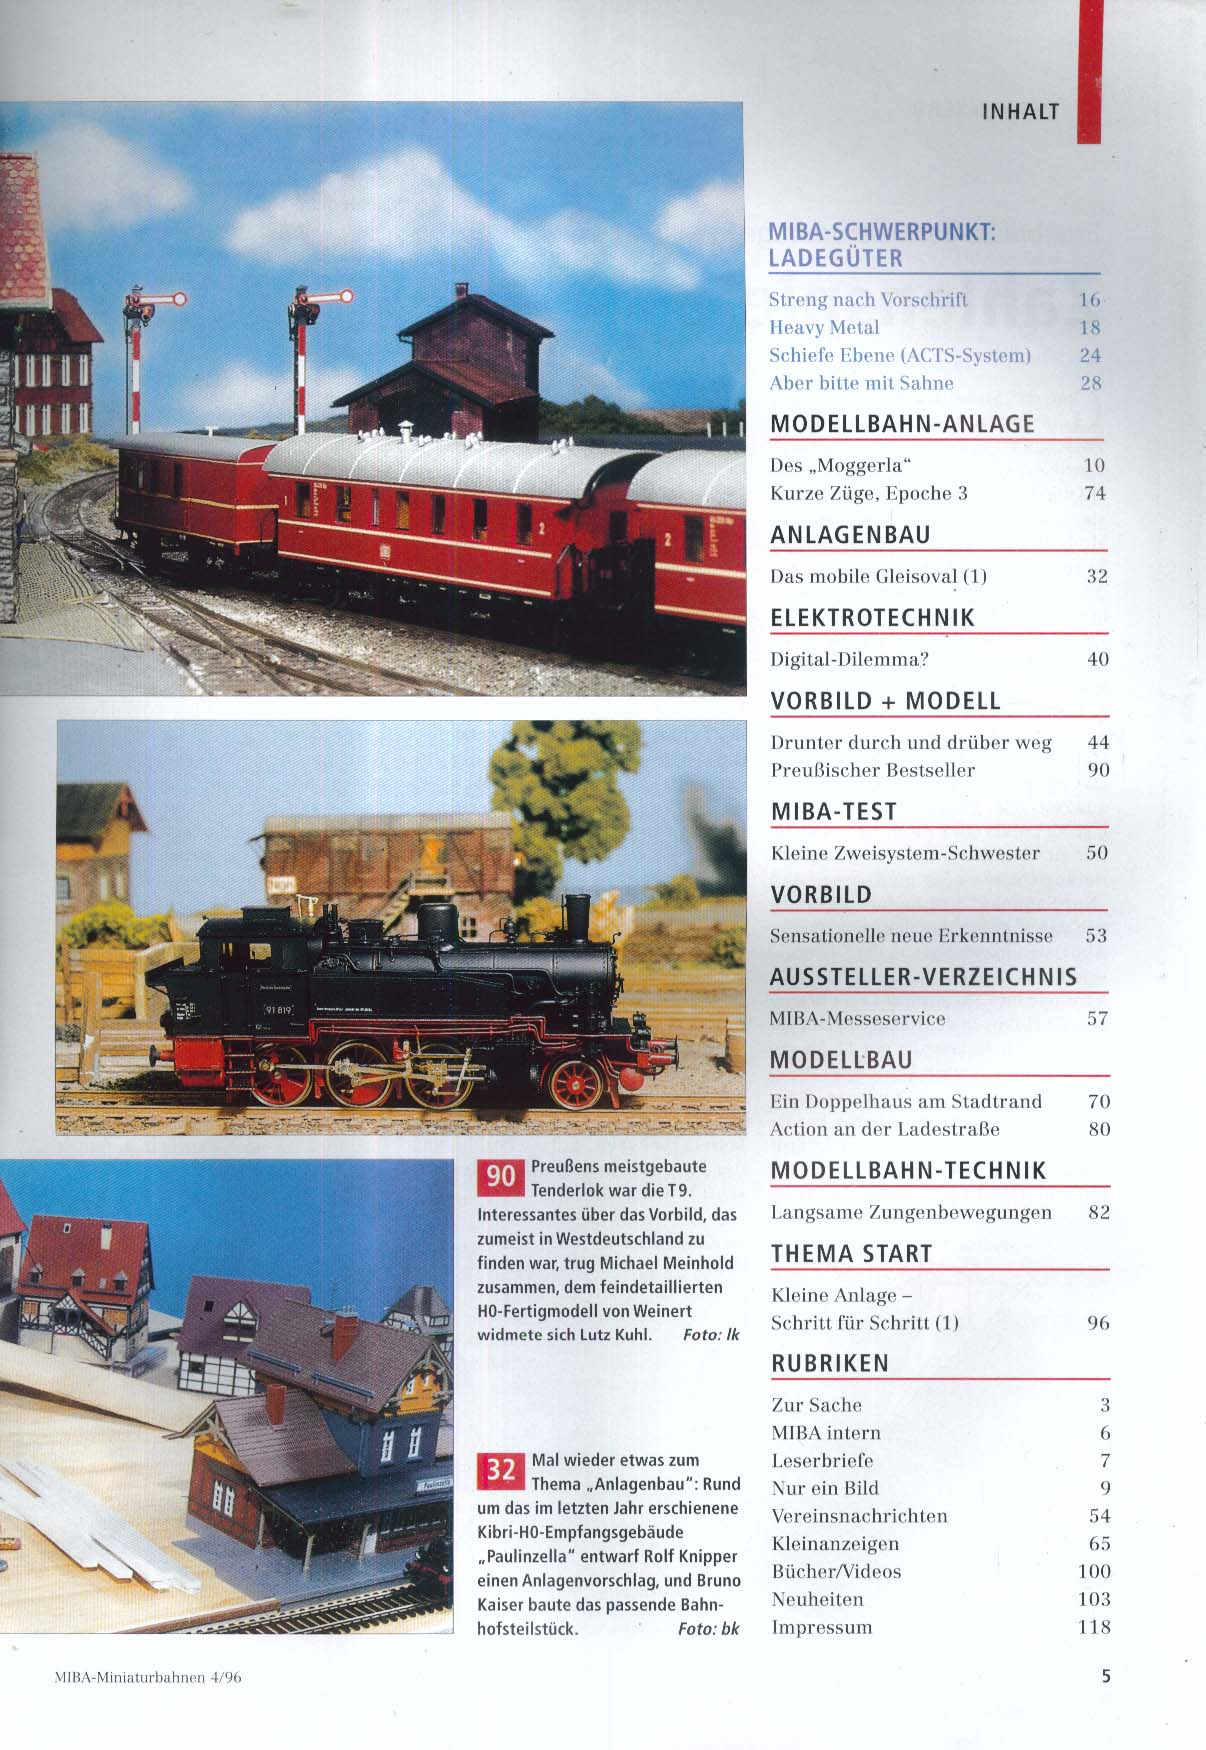 MIBA-Miniaturbahnen German-language model train magazine Allerlei Ladegut 4 1996